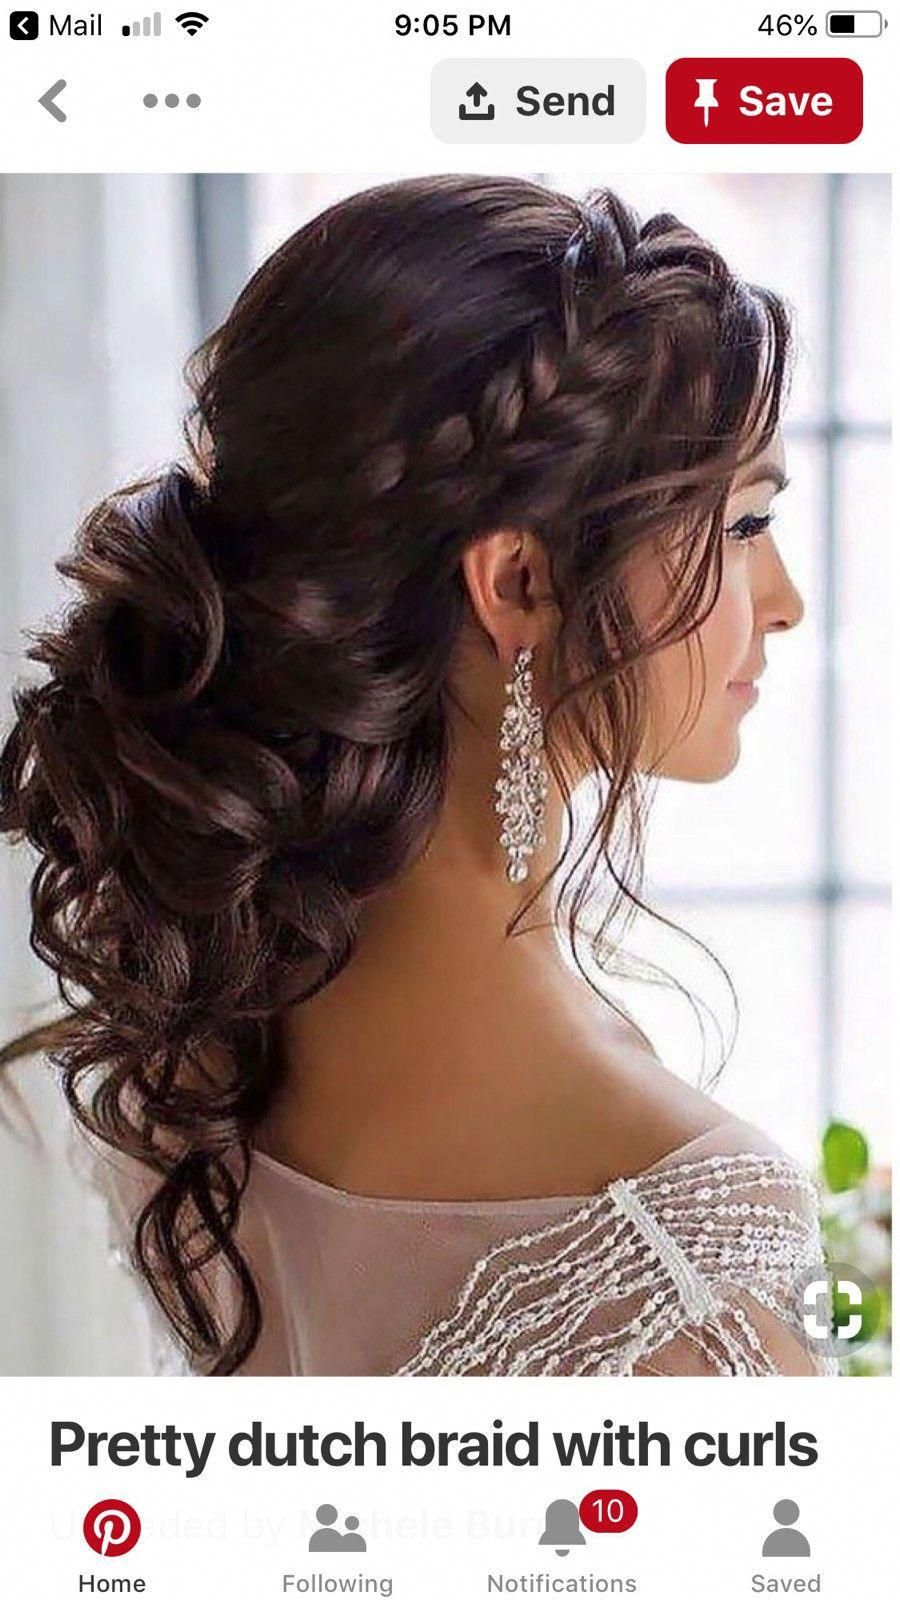 Promhairstyleshalfuphalfdown Prom Hairstyles For Long Hair Homecoming Quince Quinceanera